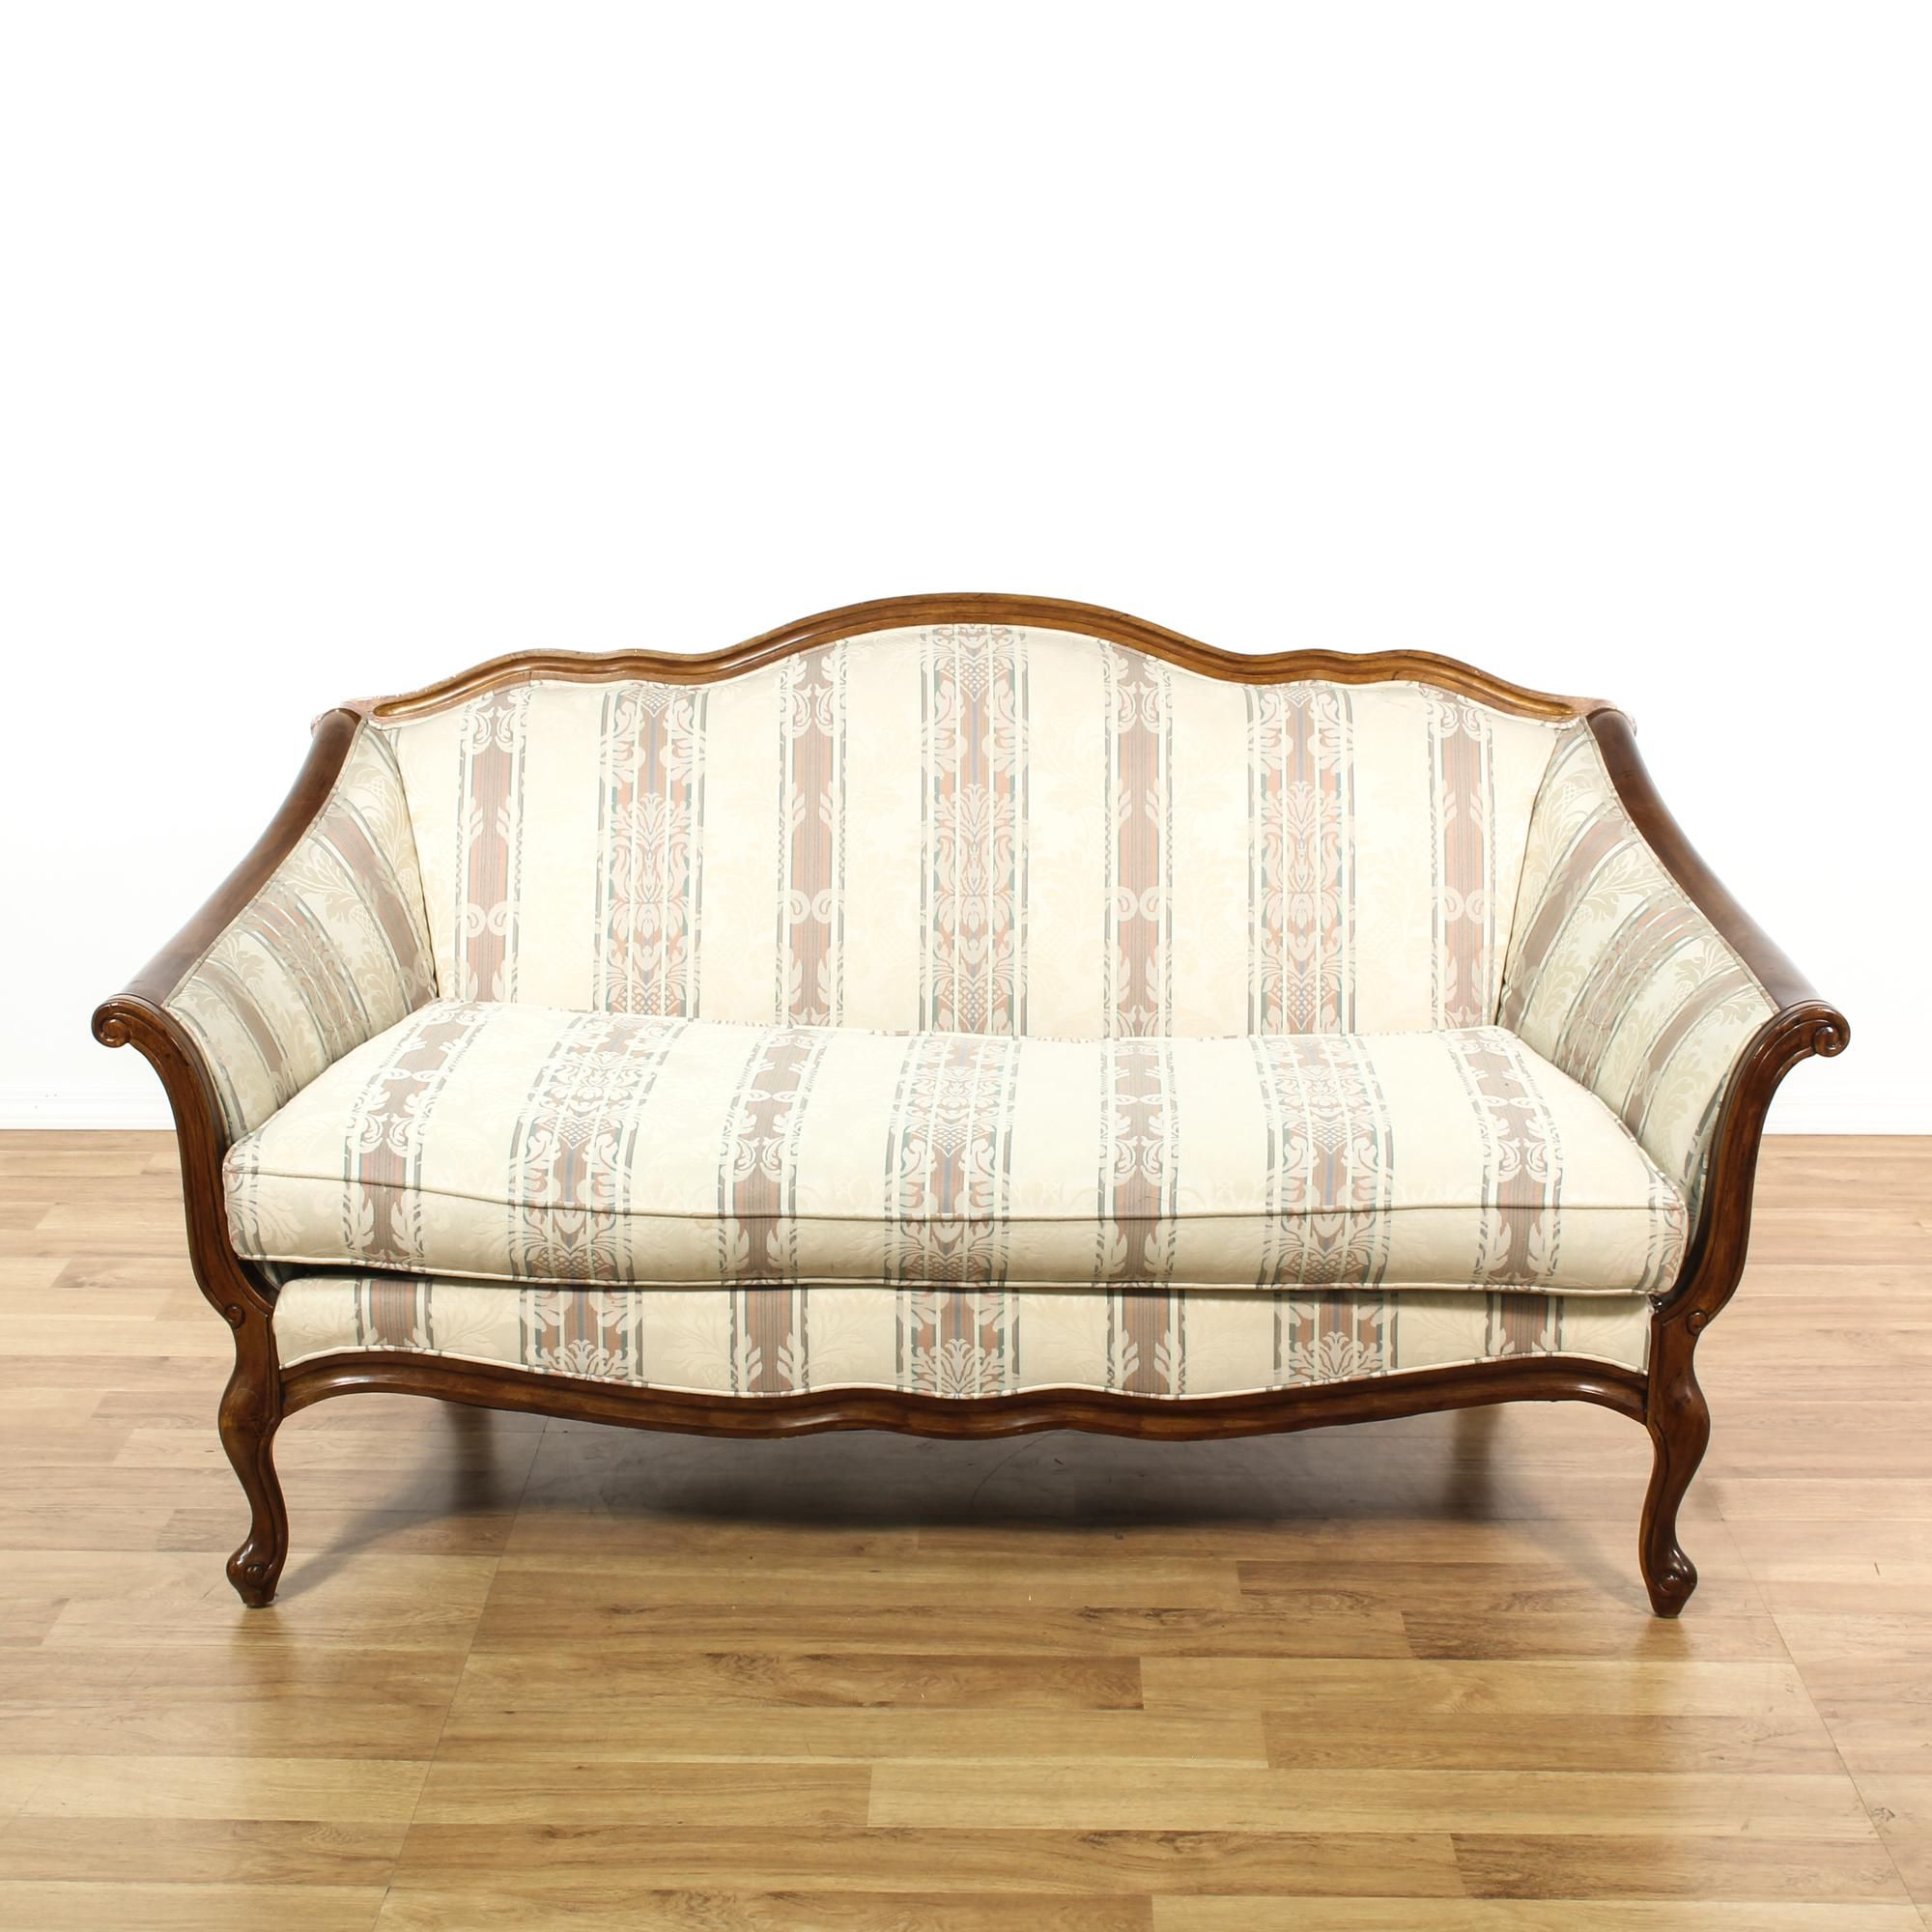 This French Provincial Loveseat Is Upholstered In A Off White Cream And  Light Red Striped Damask Print Fabric. This Elegant Sofa Has Carved Glossy  Cherry ...